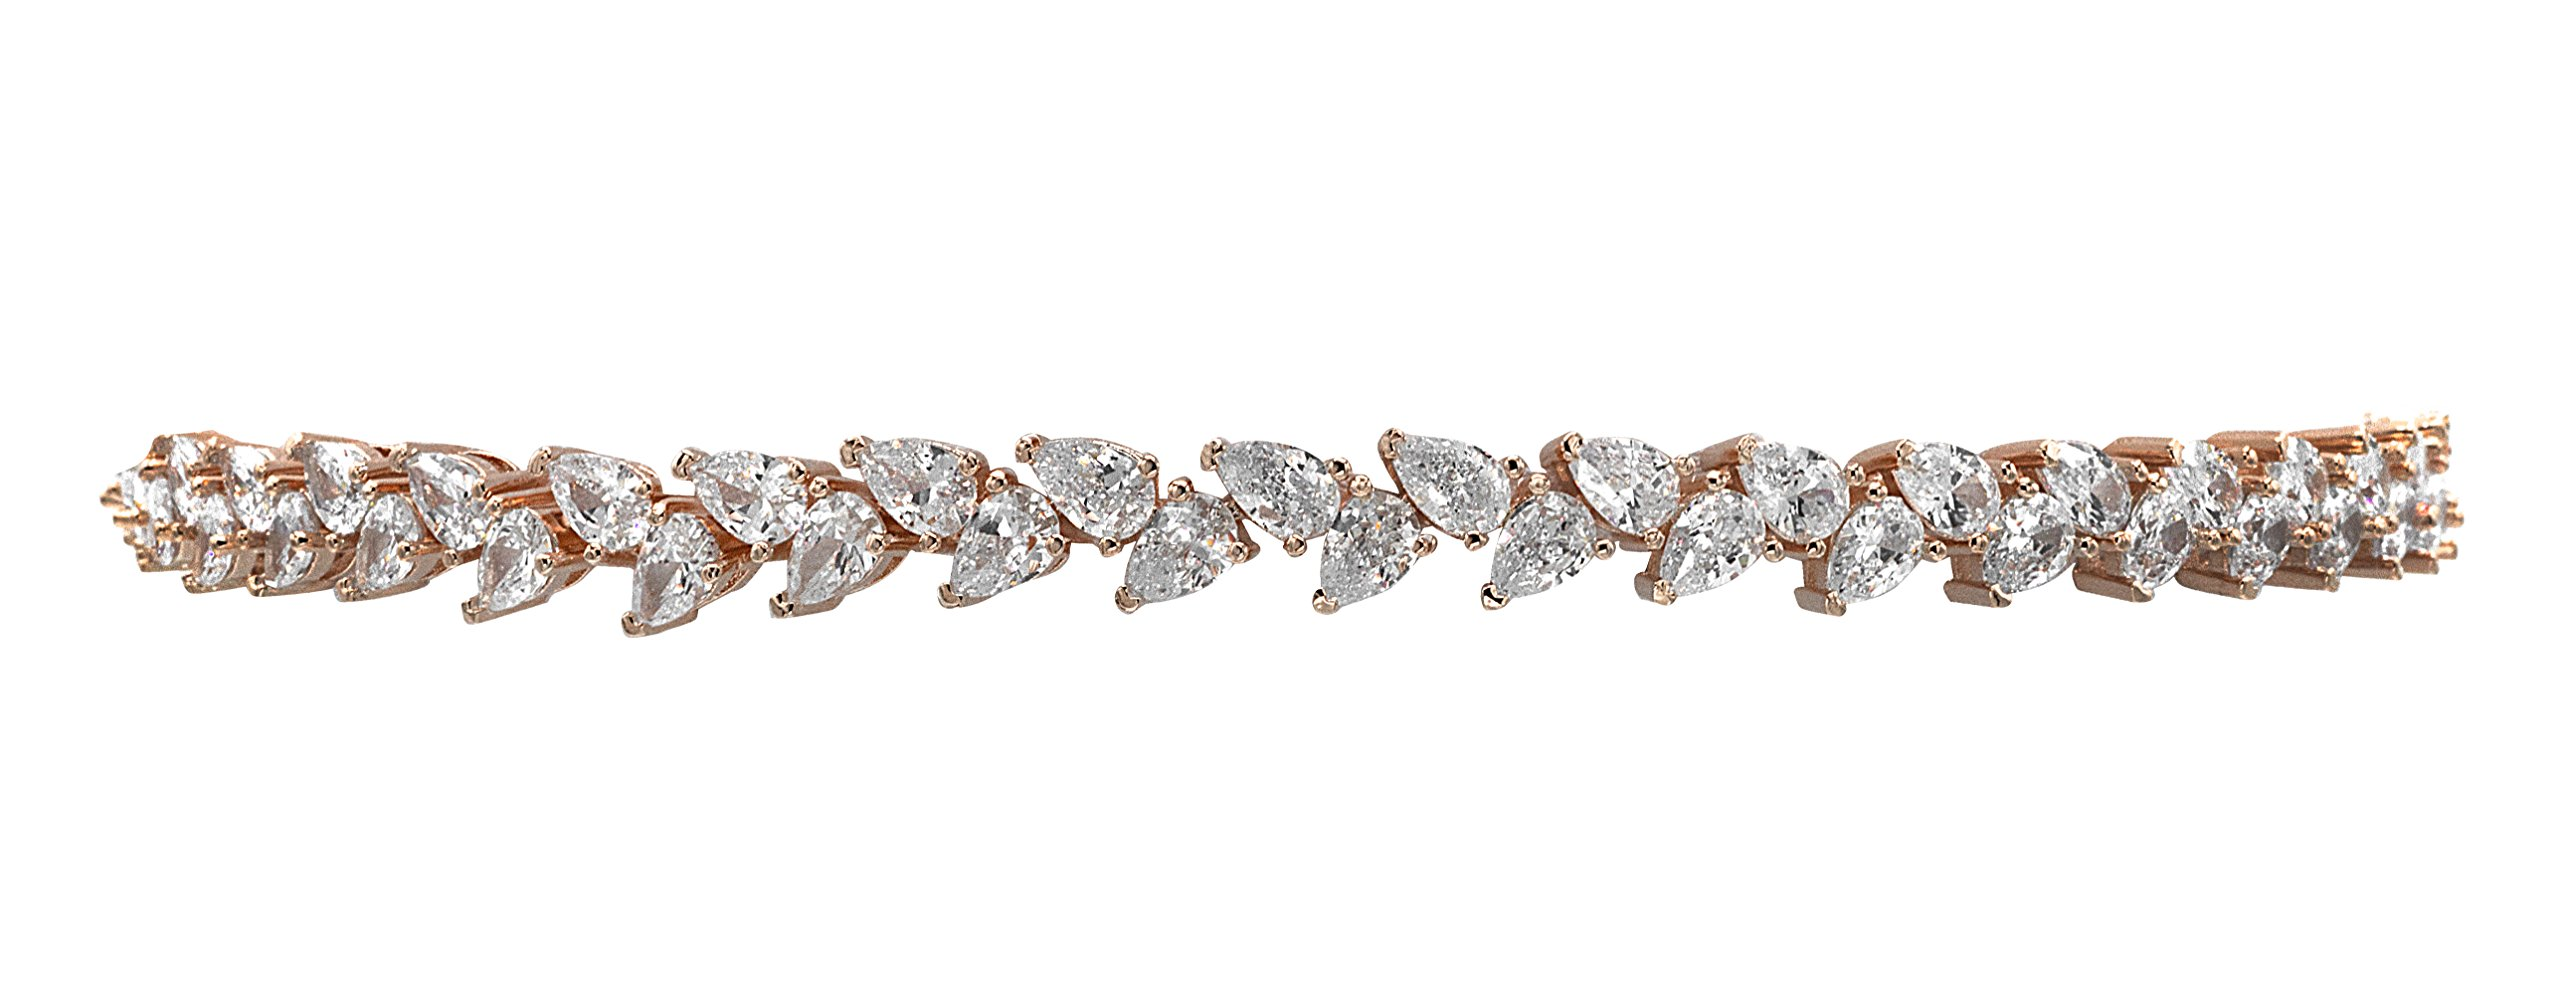 Samfa Style Pear Shaped Diamond Choker Necklace with Extension (rose-gold-plated-brass)